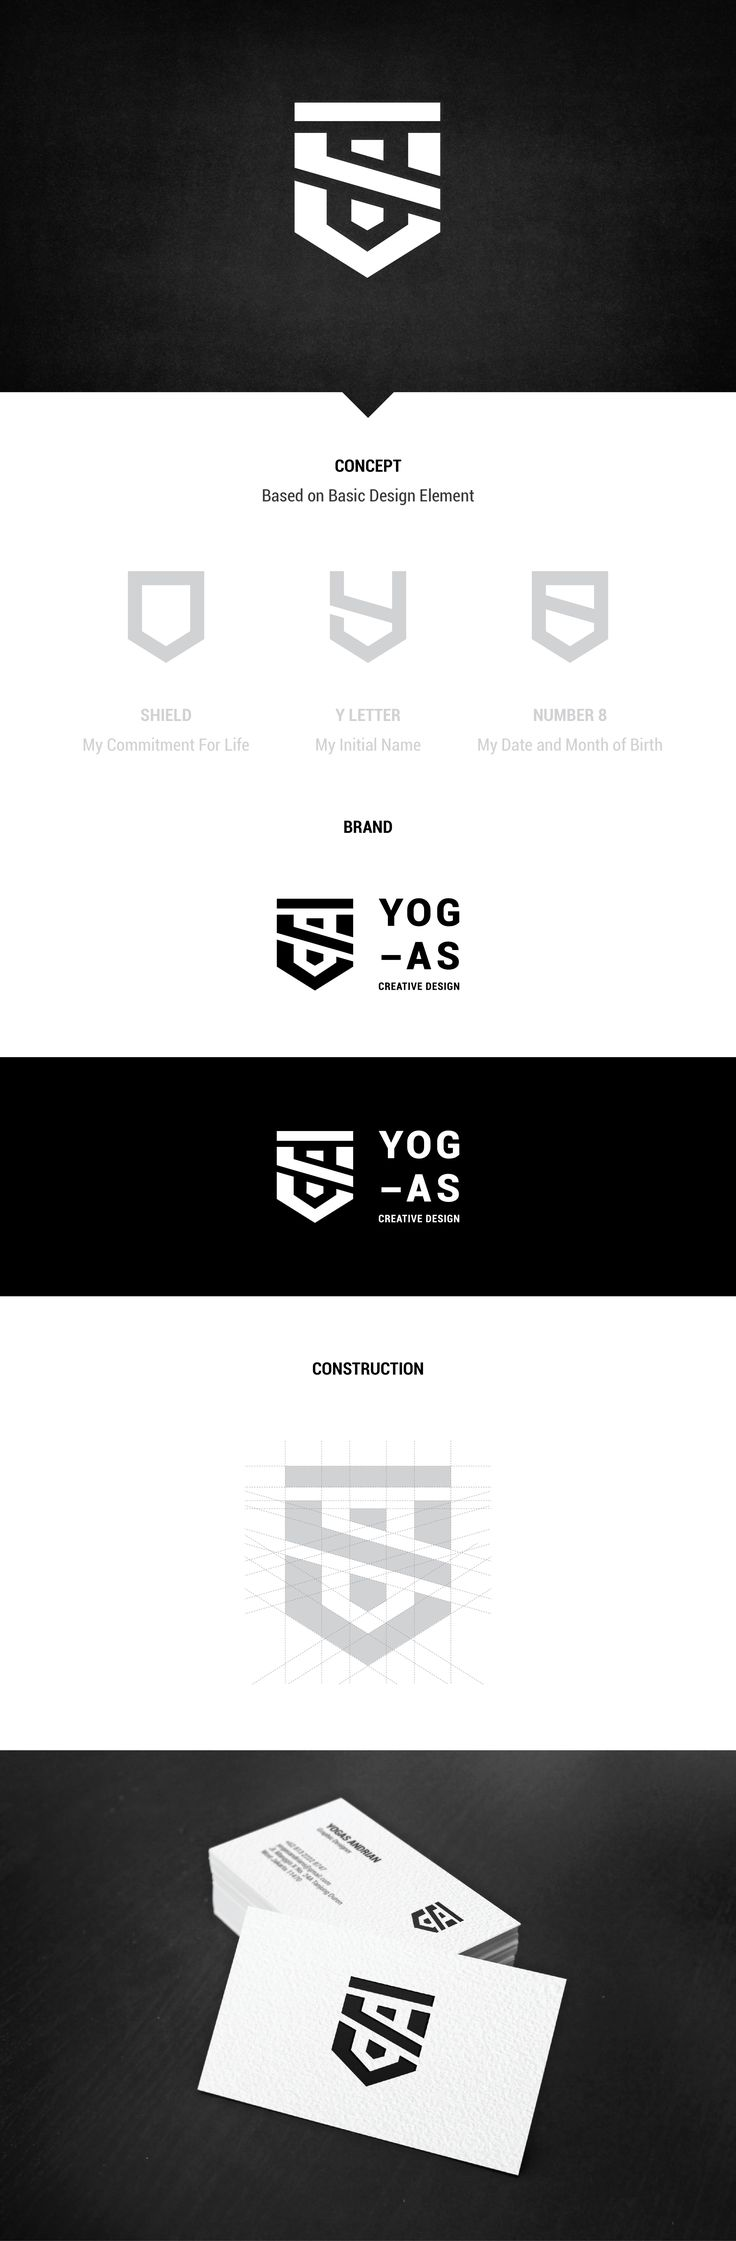 """Check out my @Behance project: """"Yogas Personal Brand"""" https://www.behance.net/gallery/60185231/Yogas-Personal-Brand"""